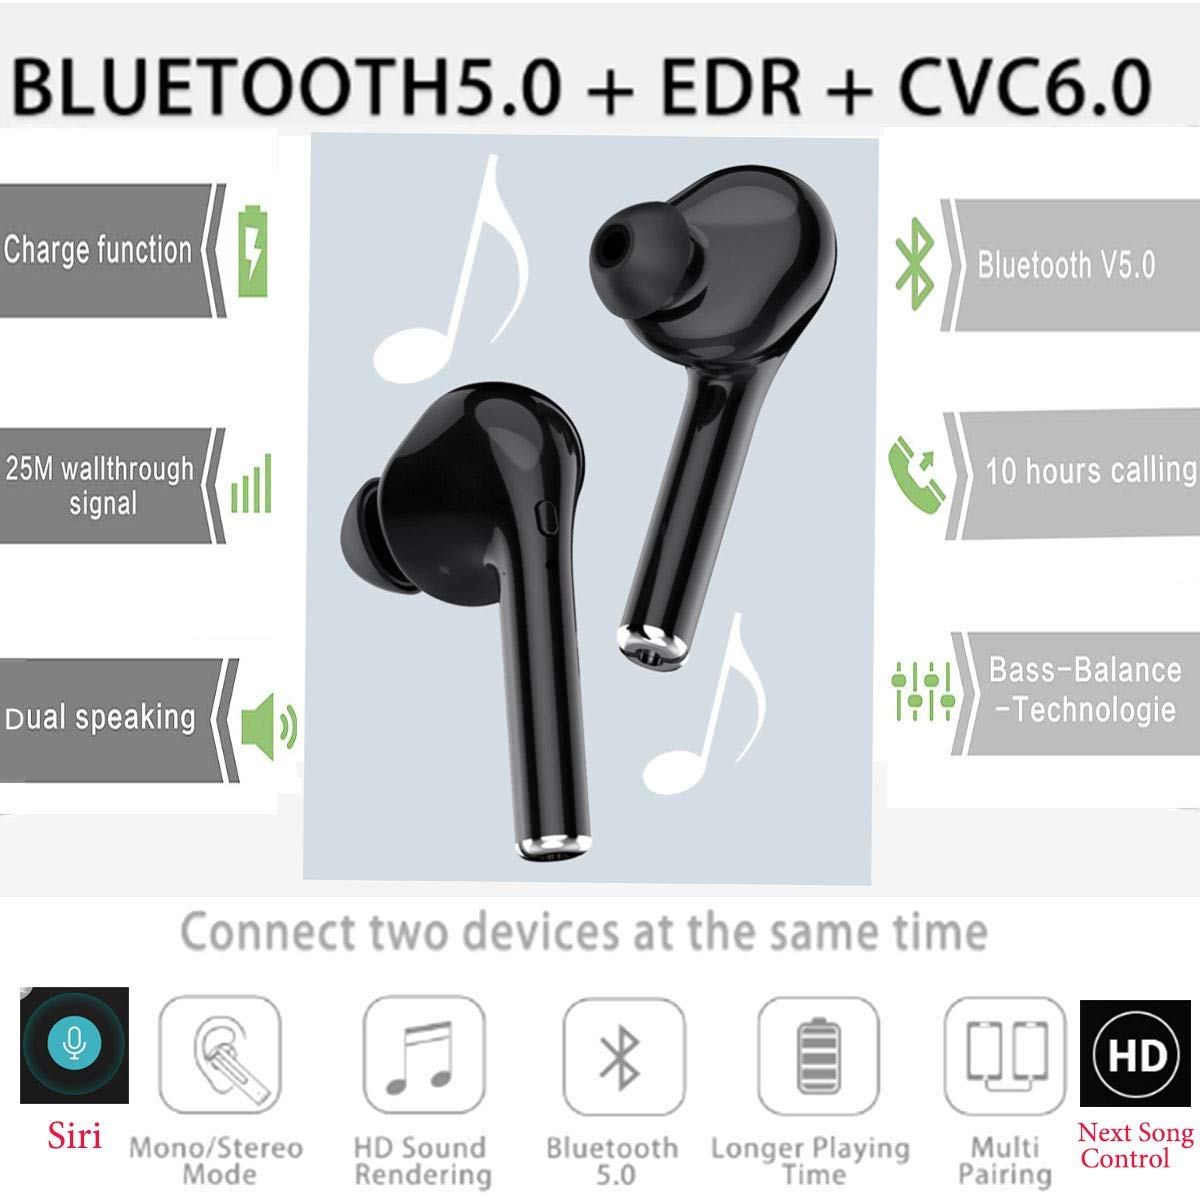 52c135ddc6e Amazon.com: Toysdone Headphones,Wireless Earbuds Stereo Earphones  Hands-Free Calling Headphone Sport Driving Headset with Charging Case for  Most Smartphones ...